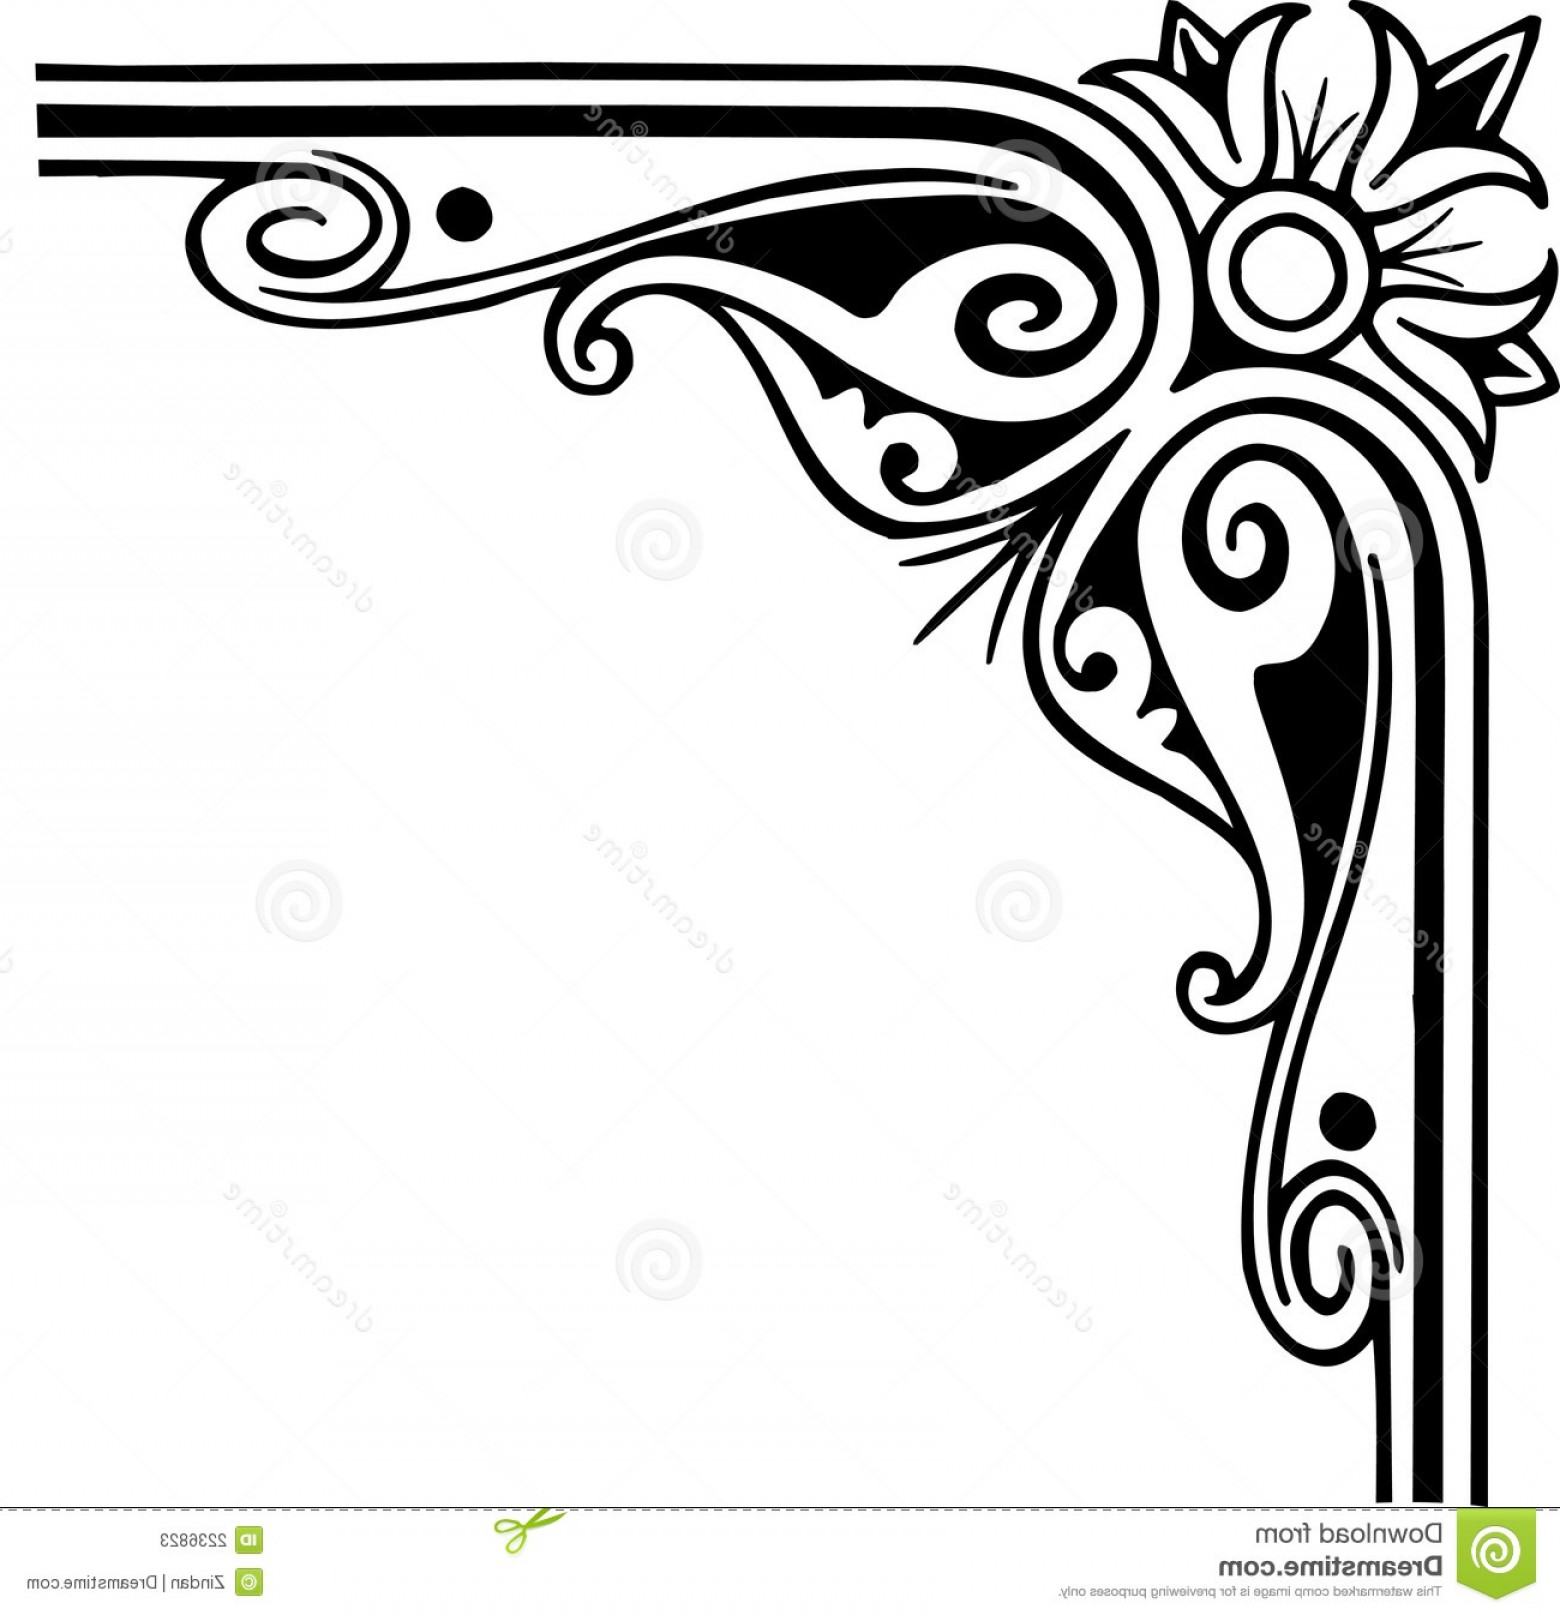 Corner Border Designs For Projects Clipart.